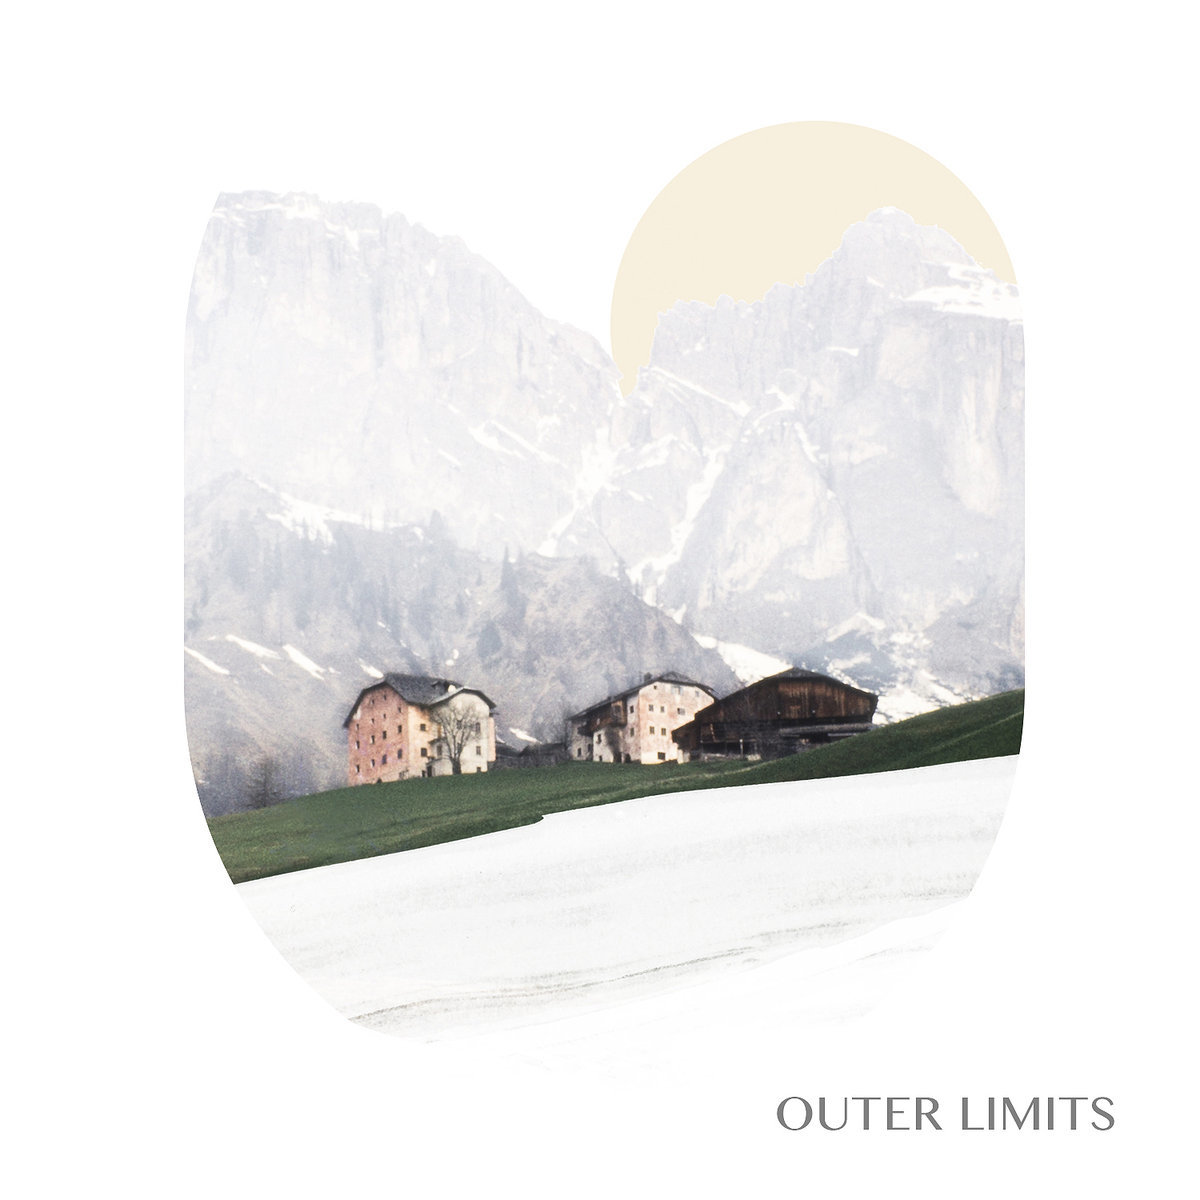 Outer Limits | Tobias Wilden